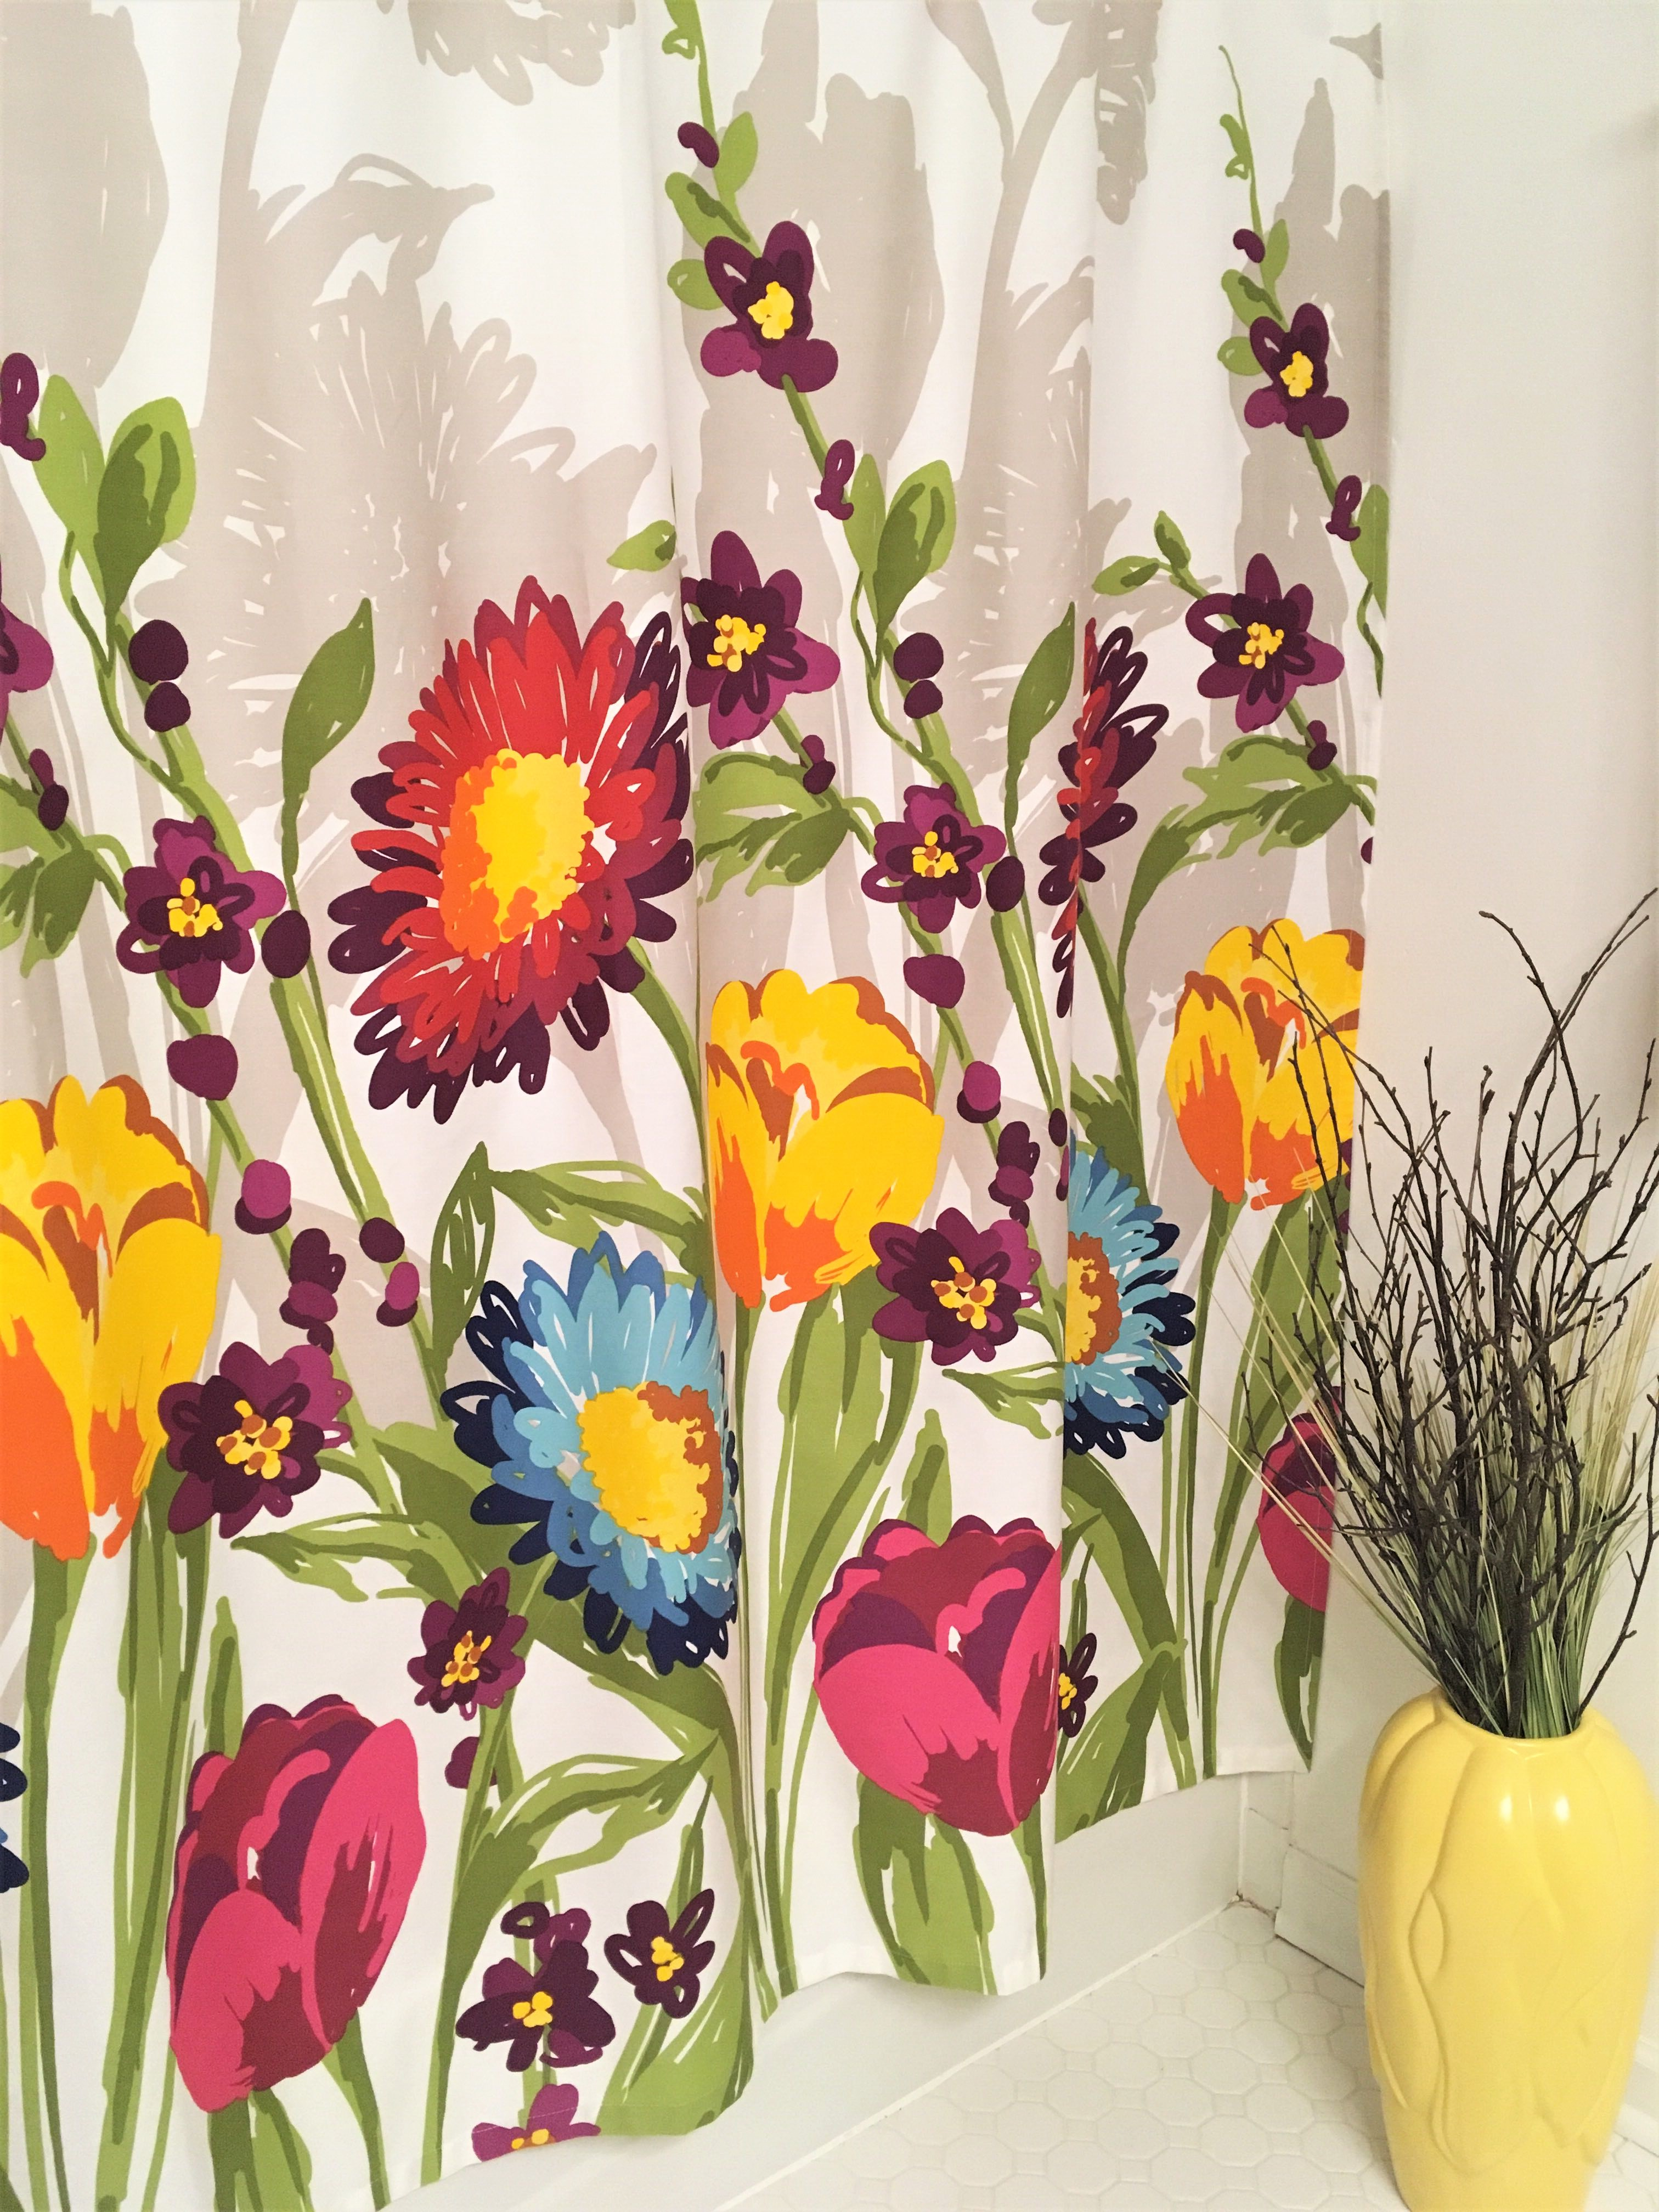 Ideas on how you can decorate your bathroom for the fall season.